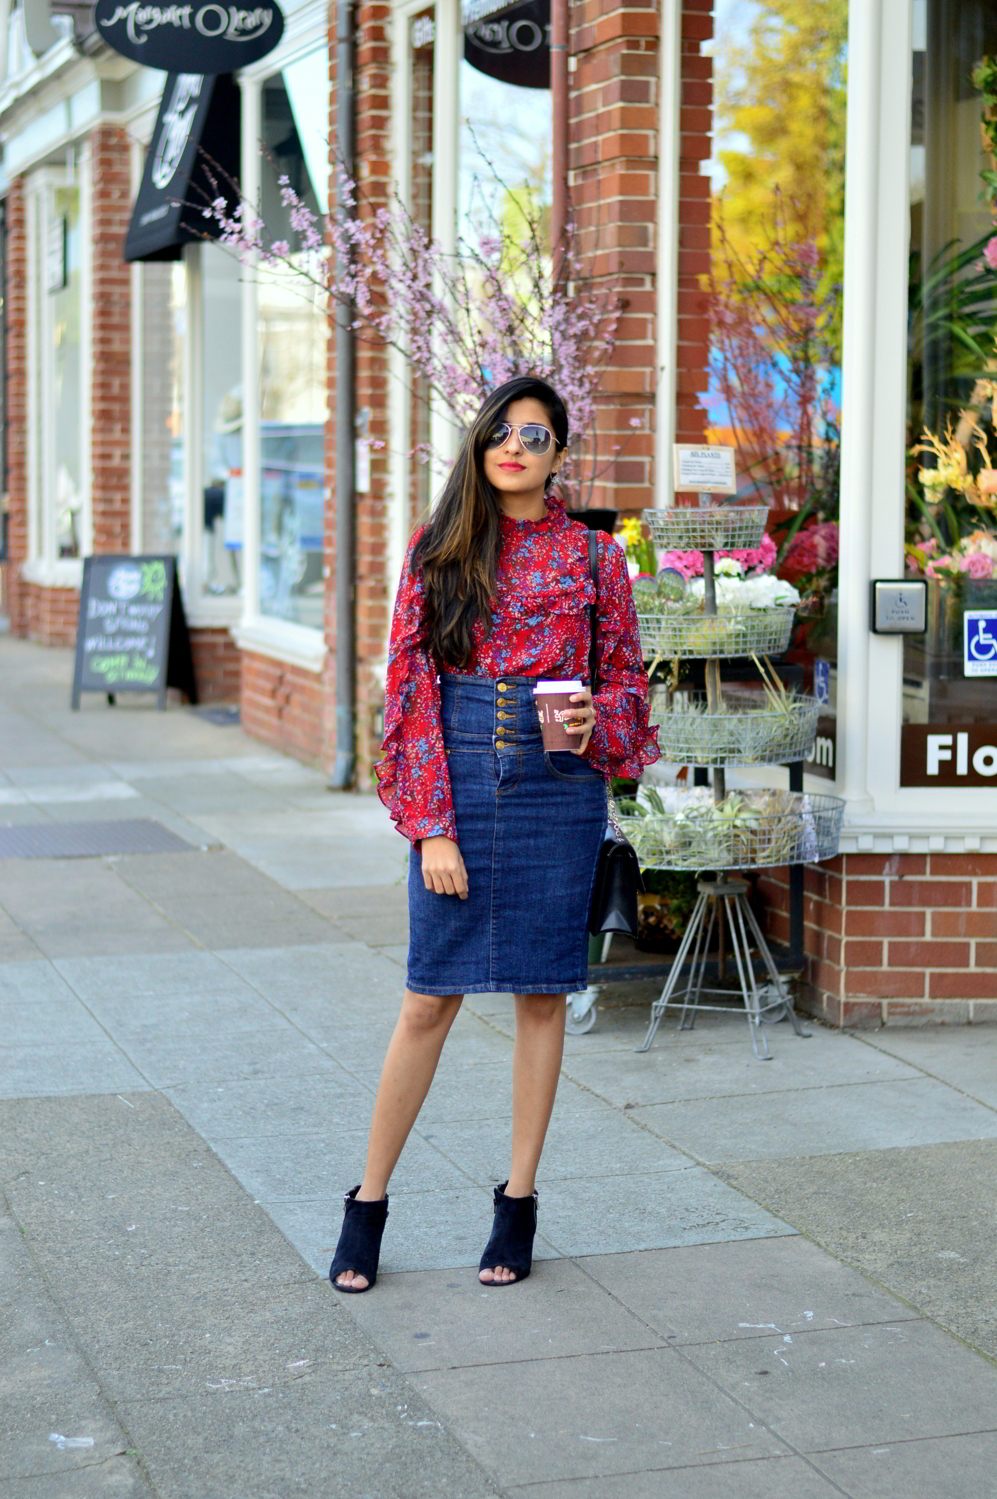 ruffles-floral-top-spring-style-midi-denim-skirt-blogger-outfit 3